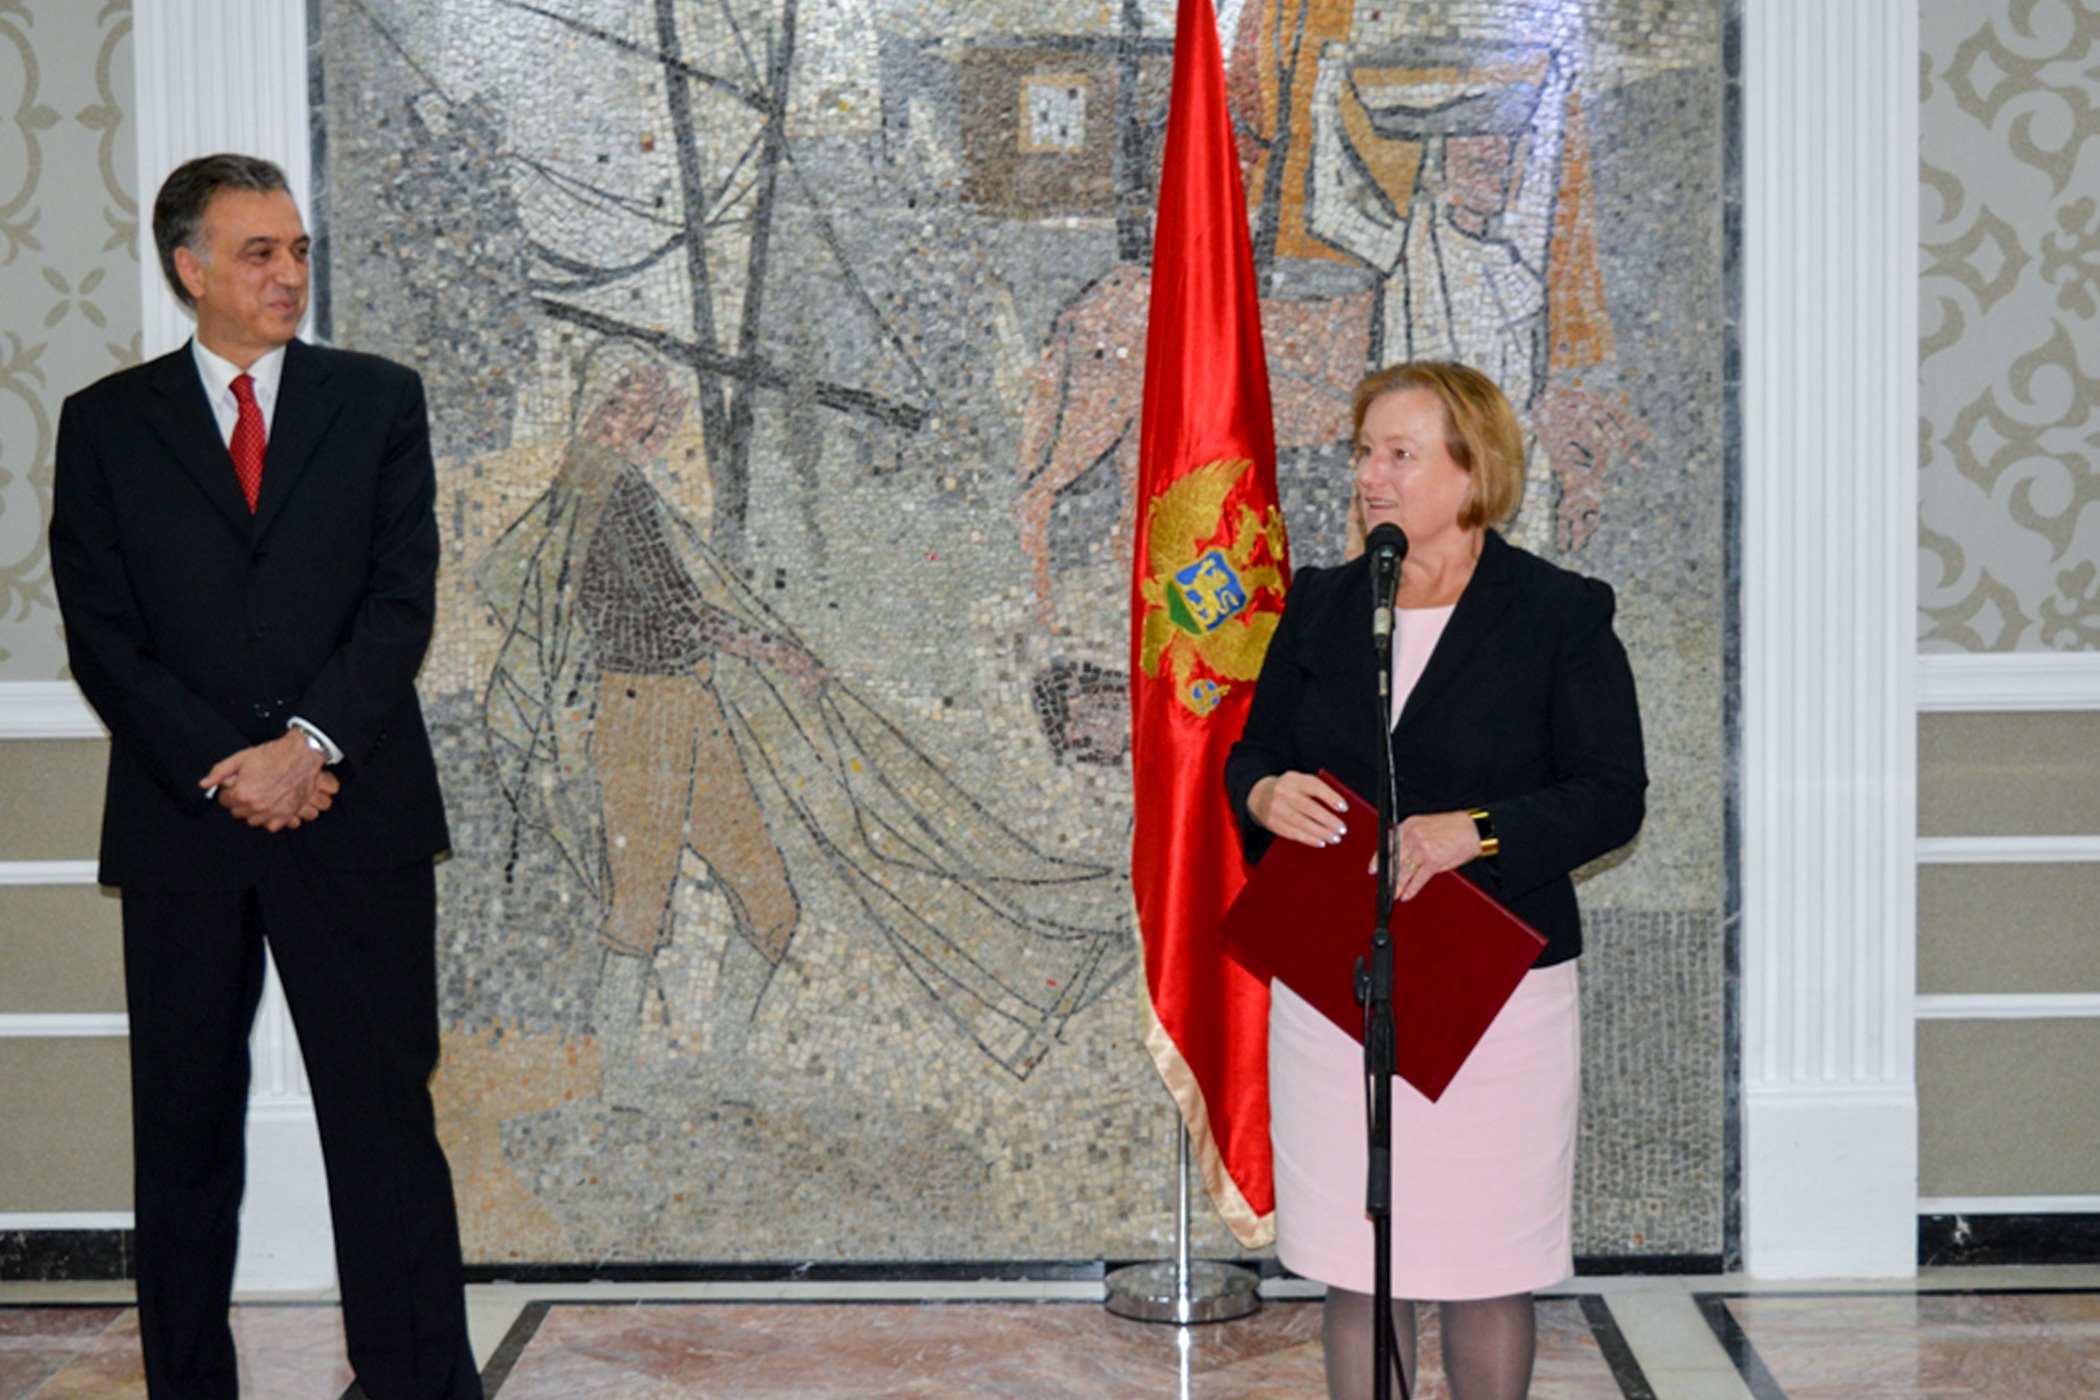 President of Montenegro honors the Voice of America with the National Award of Recognition